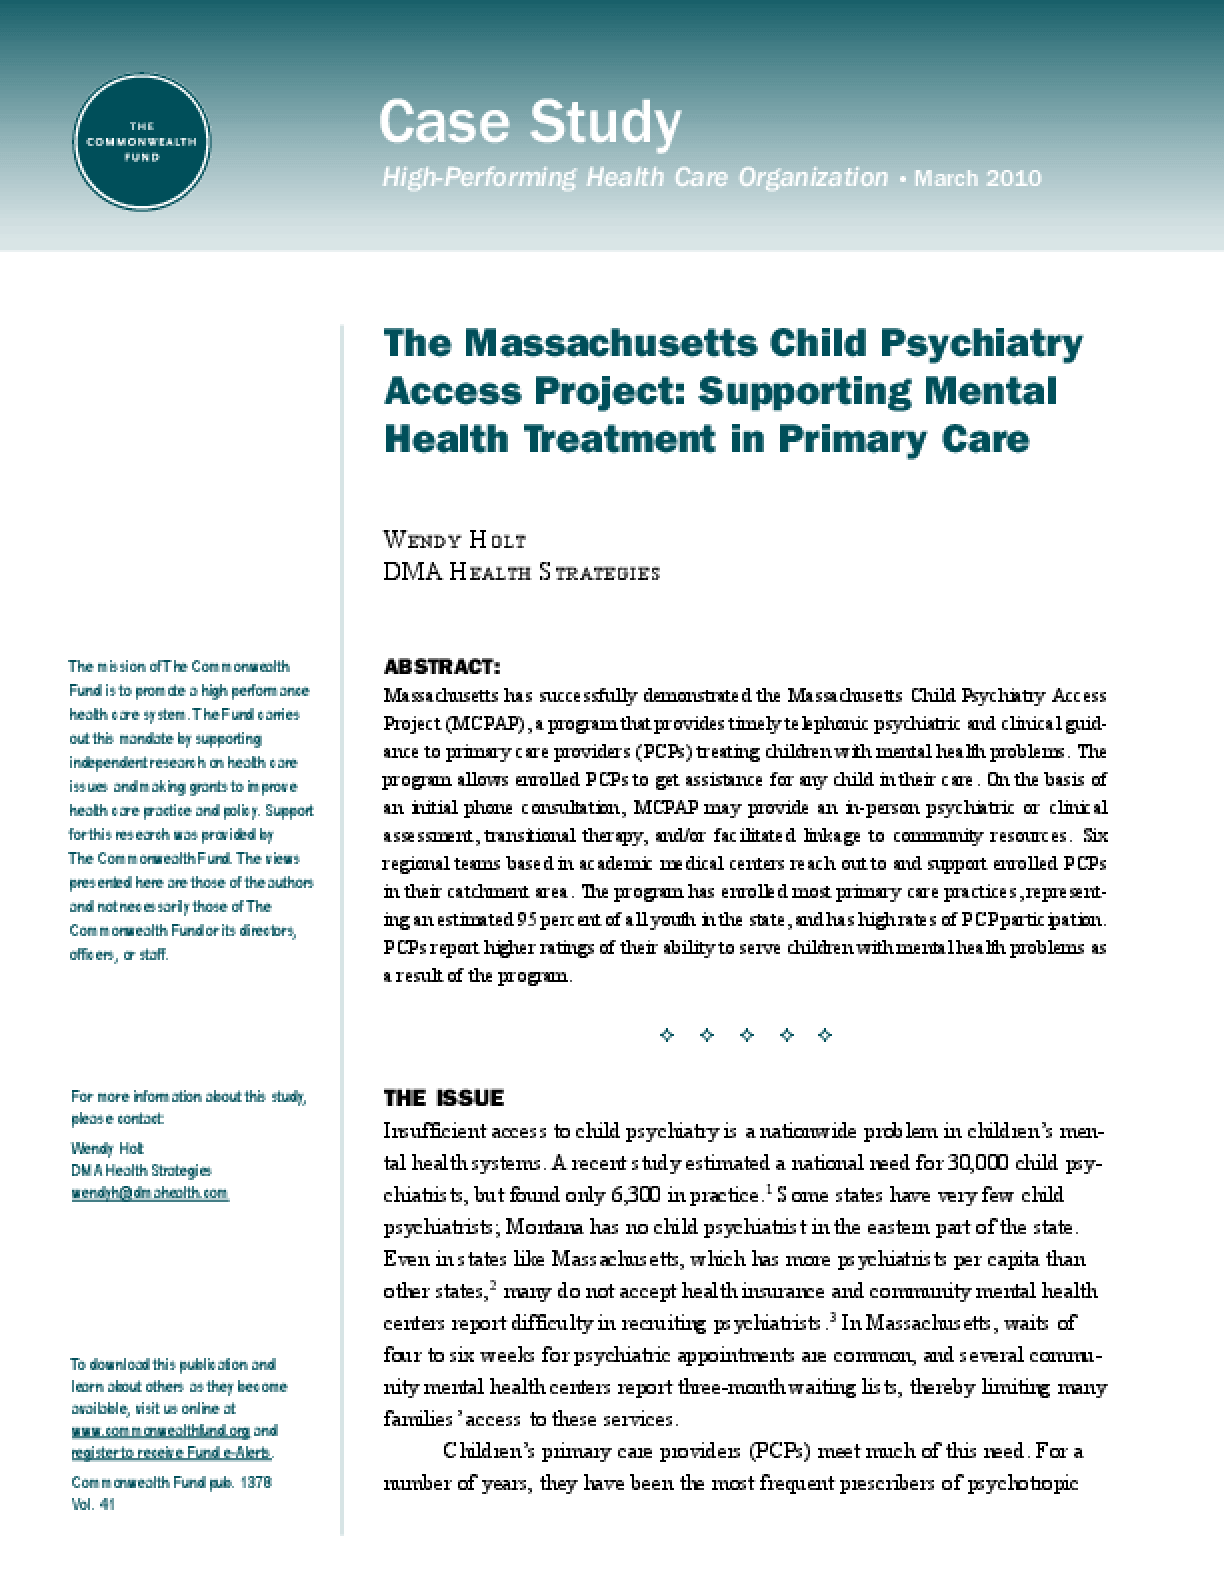 The Massachusetts Child Psychiatry Access Project: Supporting Mental Health Treatment in Primary Care